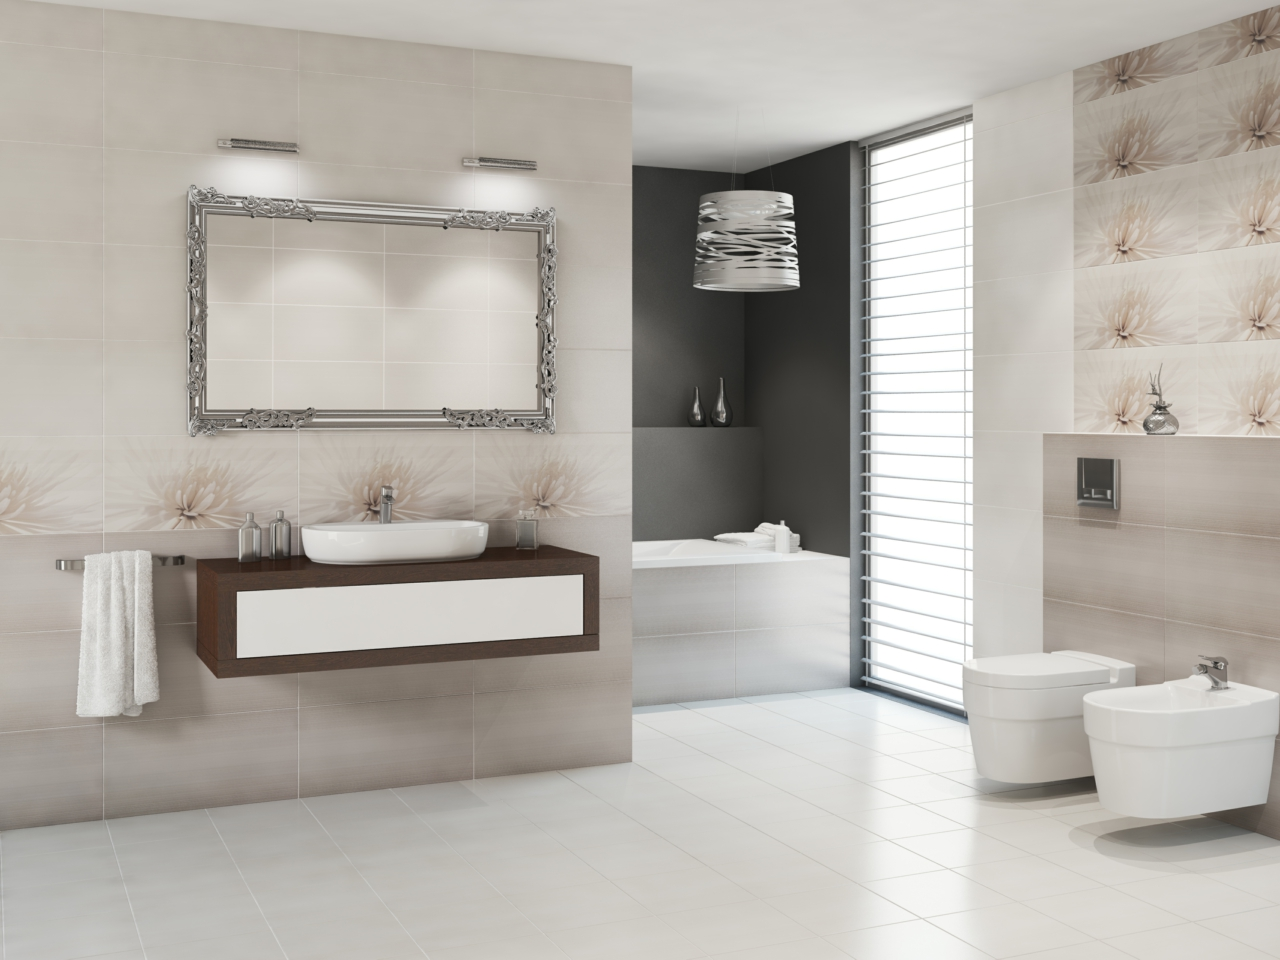 Avangarde tile collection - grey bathroom tiles